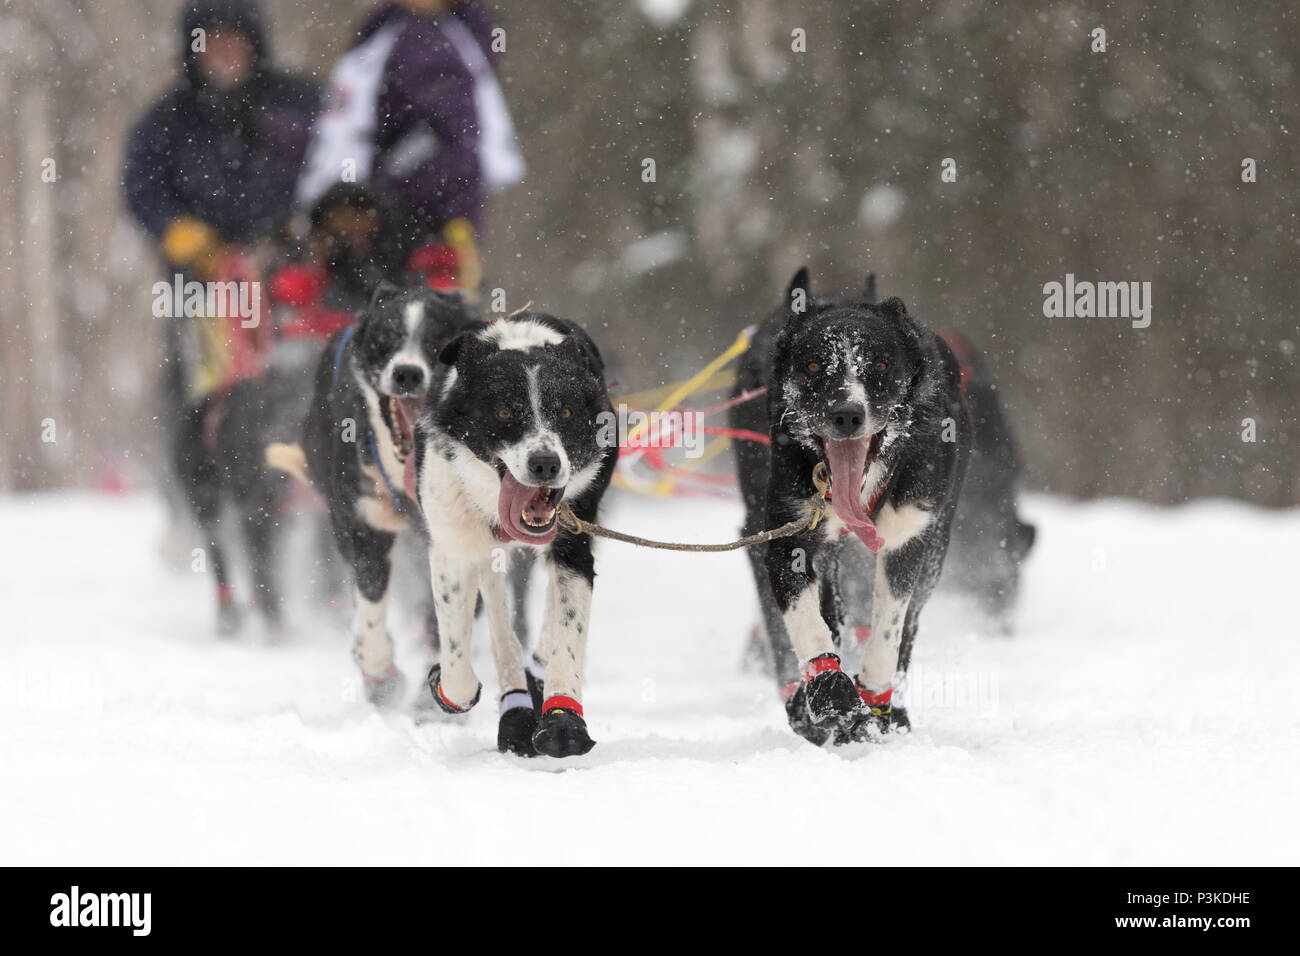 Photos taken during the Iditarod Trail Sled Dog Race nearby Anchorage Alaska - Stock Image